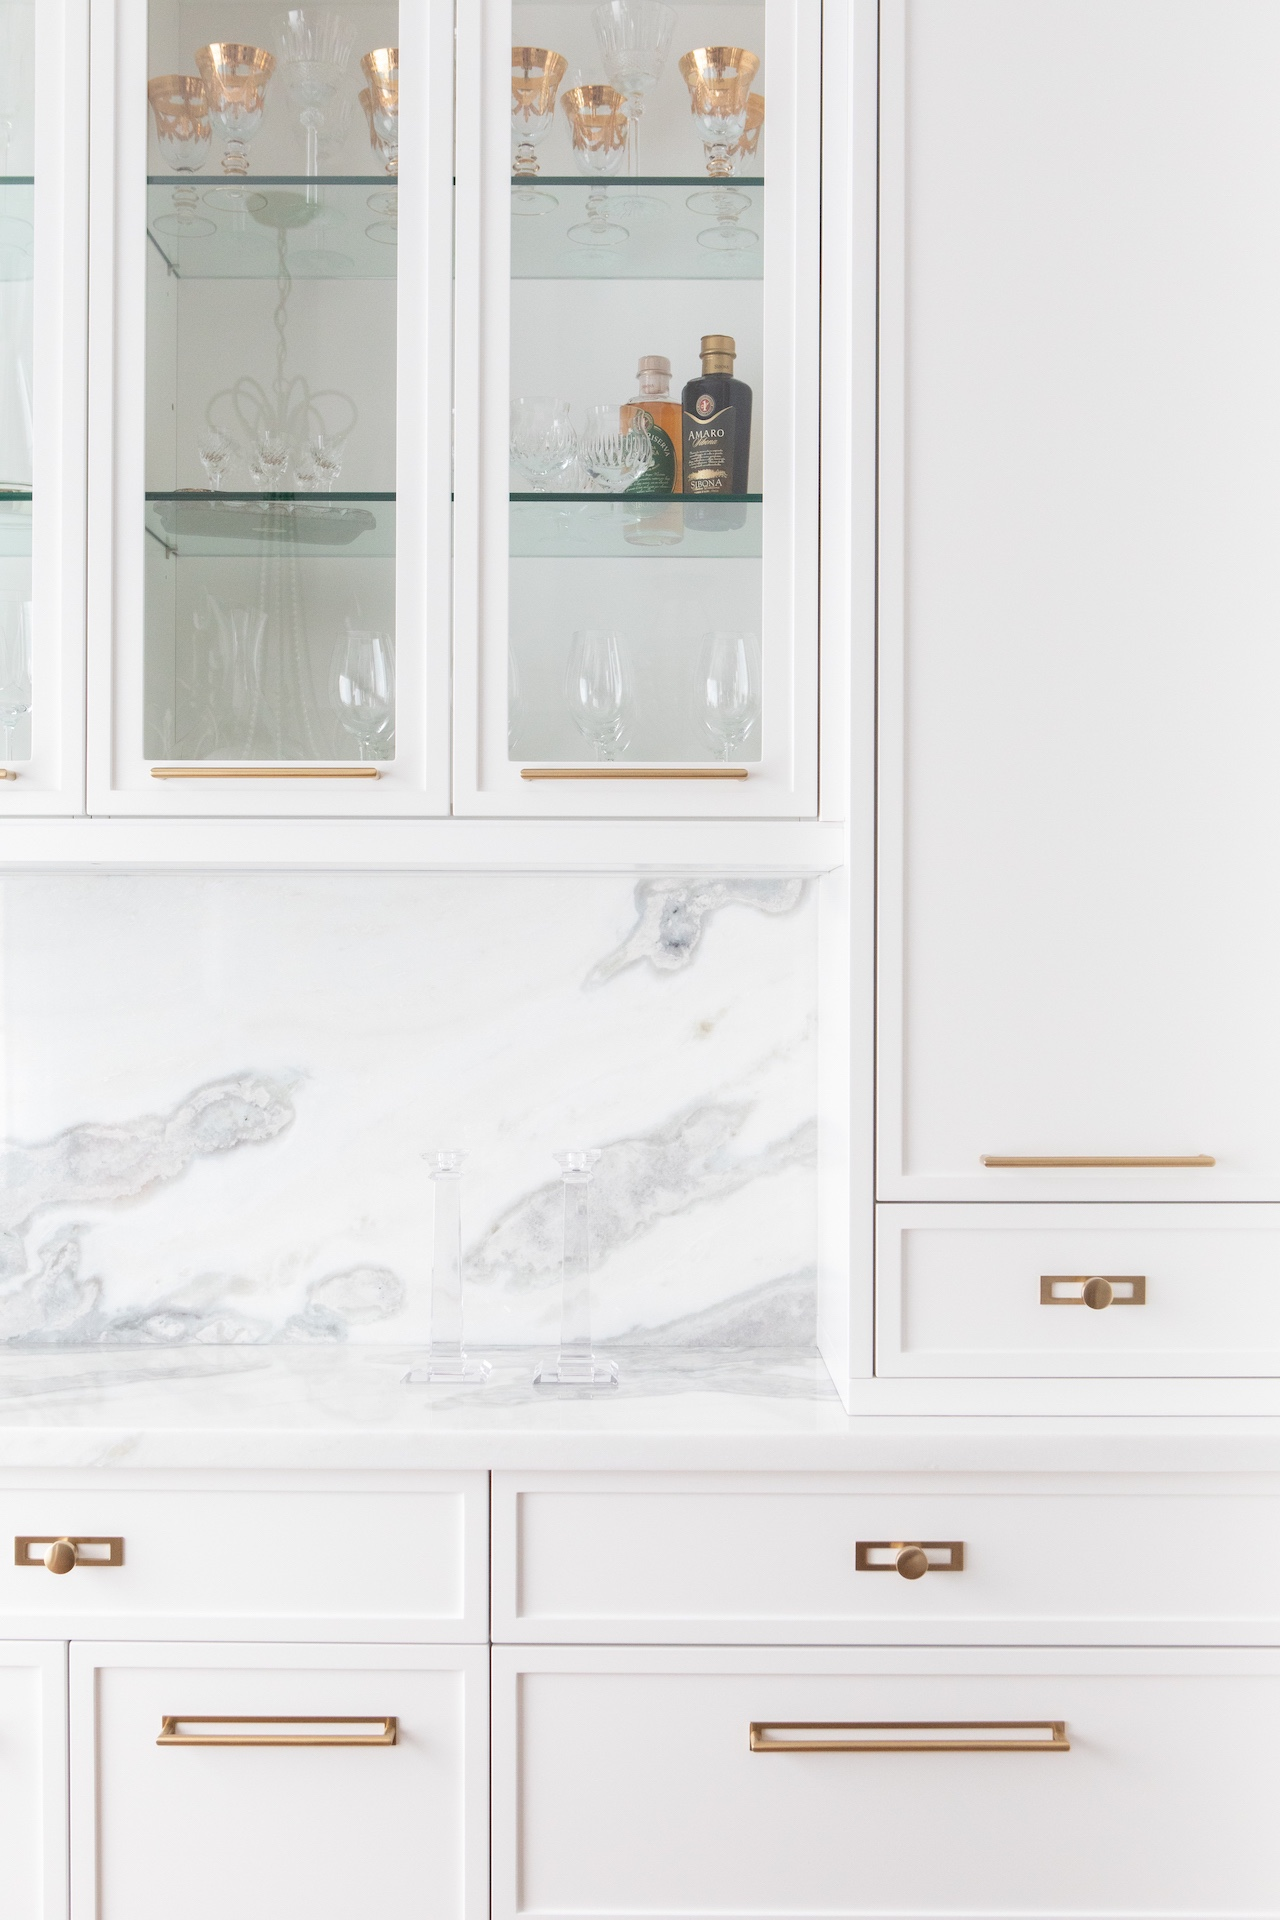 White kitchen with gold hardware and ovenWhite kitchen with gold hardware and oven